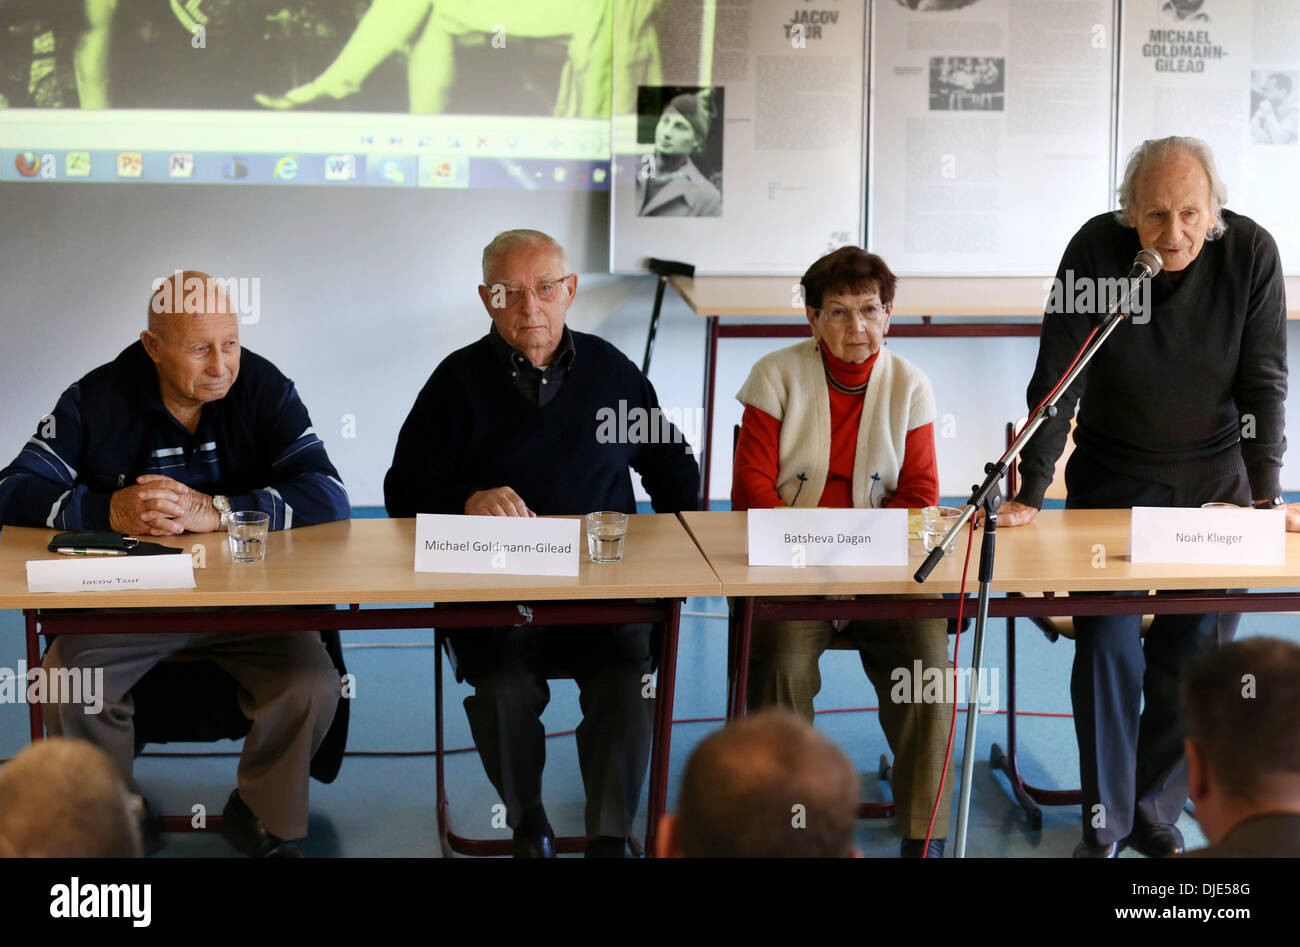 Roevershagen, Germany. 26th Nov, 2013. The four Holocaust survivors Noah Klieger (R-L), Batsheva Dagan, Michael Goldmann-Gilead and Jacov Tsur are guests in the Heidetreff in Roevershagen, Germany, 26 November 2013. They were invited to Germany by the project group 'War graves' of the European school Roevershagen and will speak about their memories. Photo: Bernd Wuestneck/dpa/Alamy Live News - Stock Image